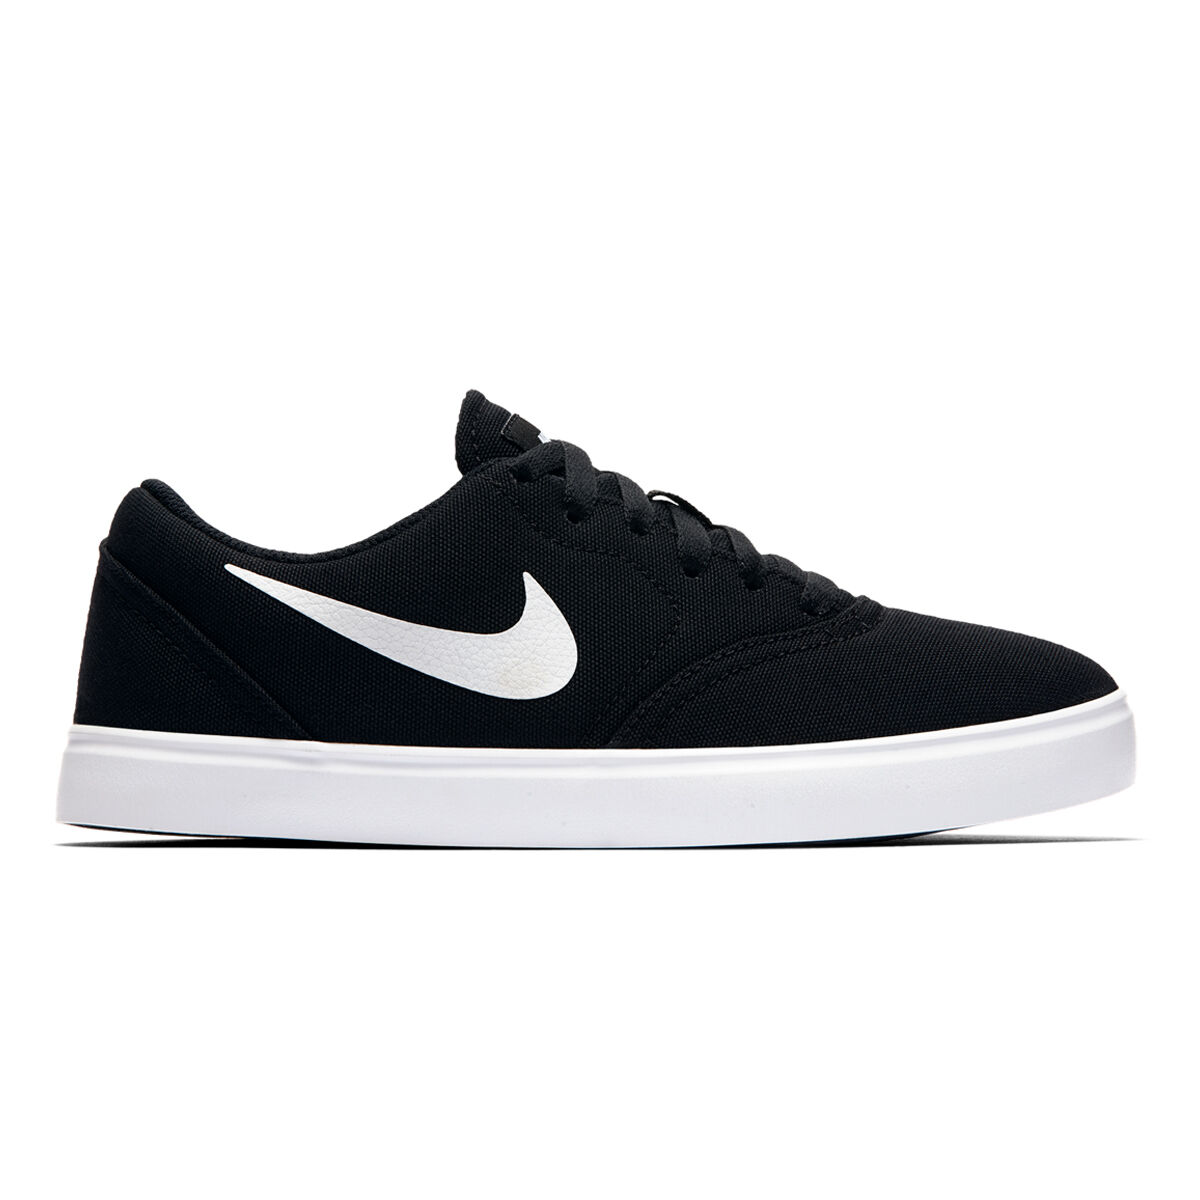 Mens Grey Skate Shoes Nike SB Portmore II Wolf Grey & White Canvas Skate Shoes Grey D Treads